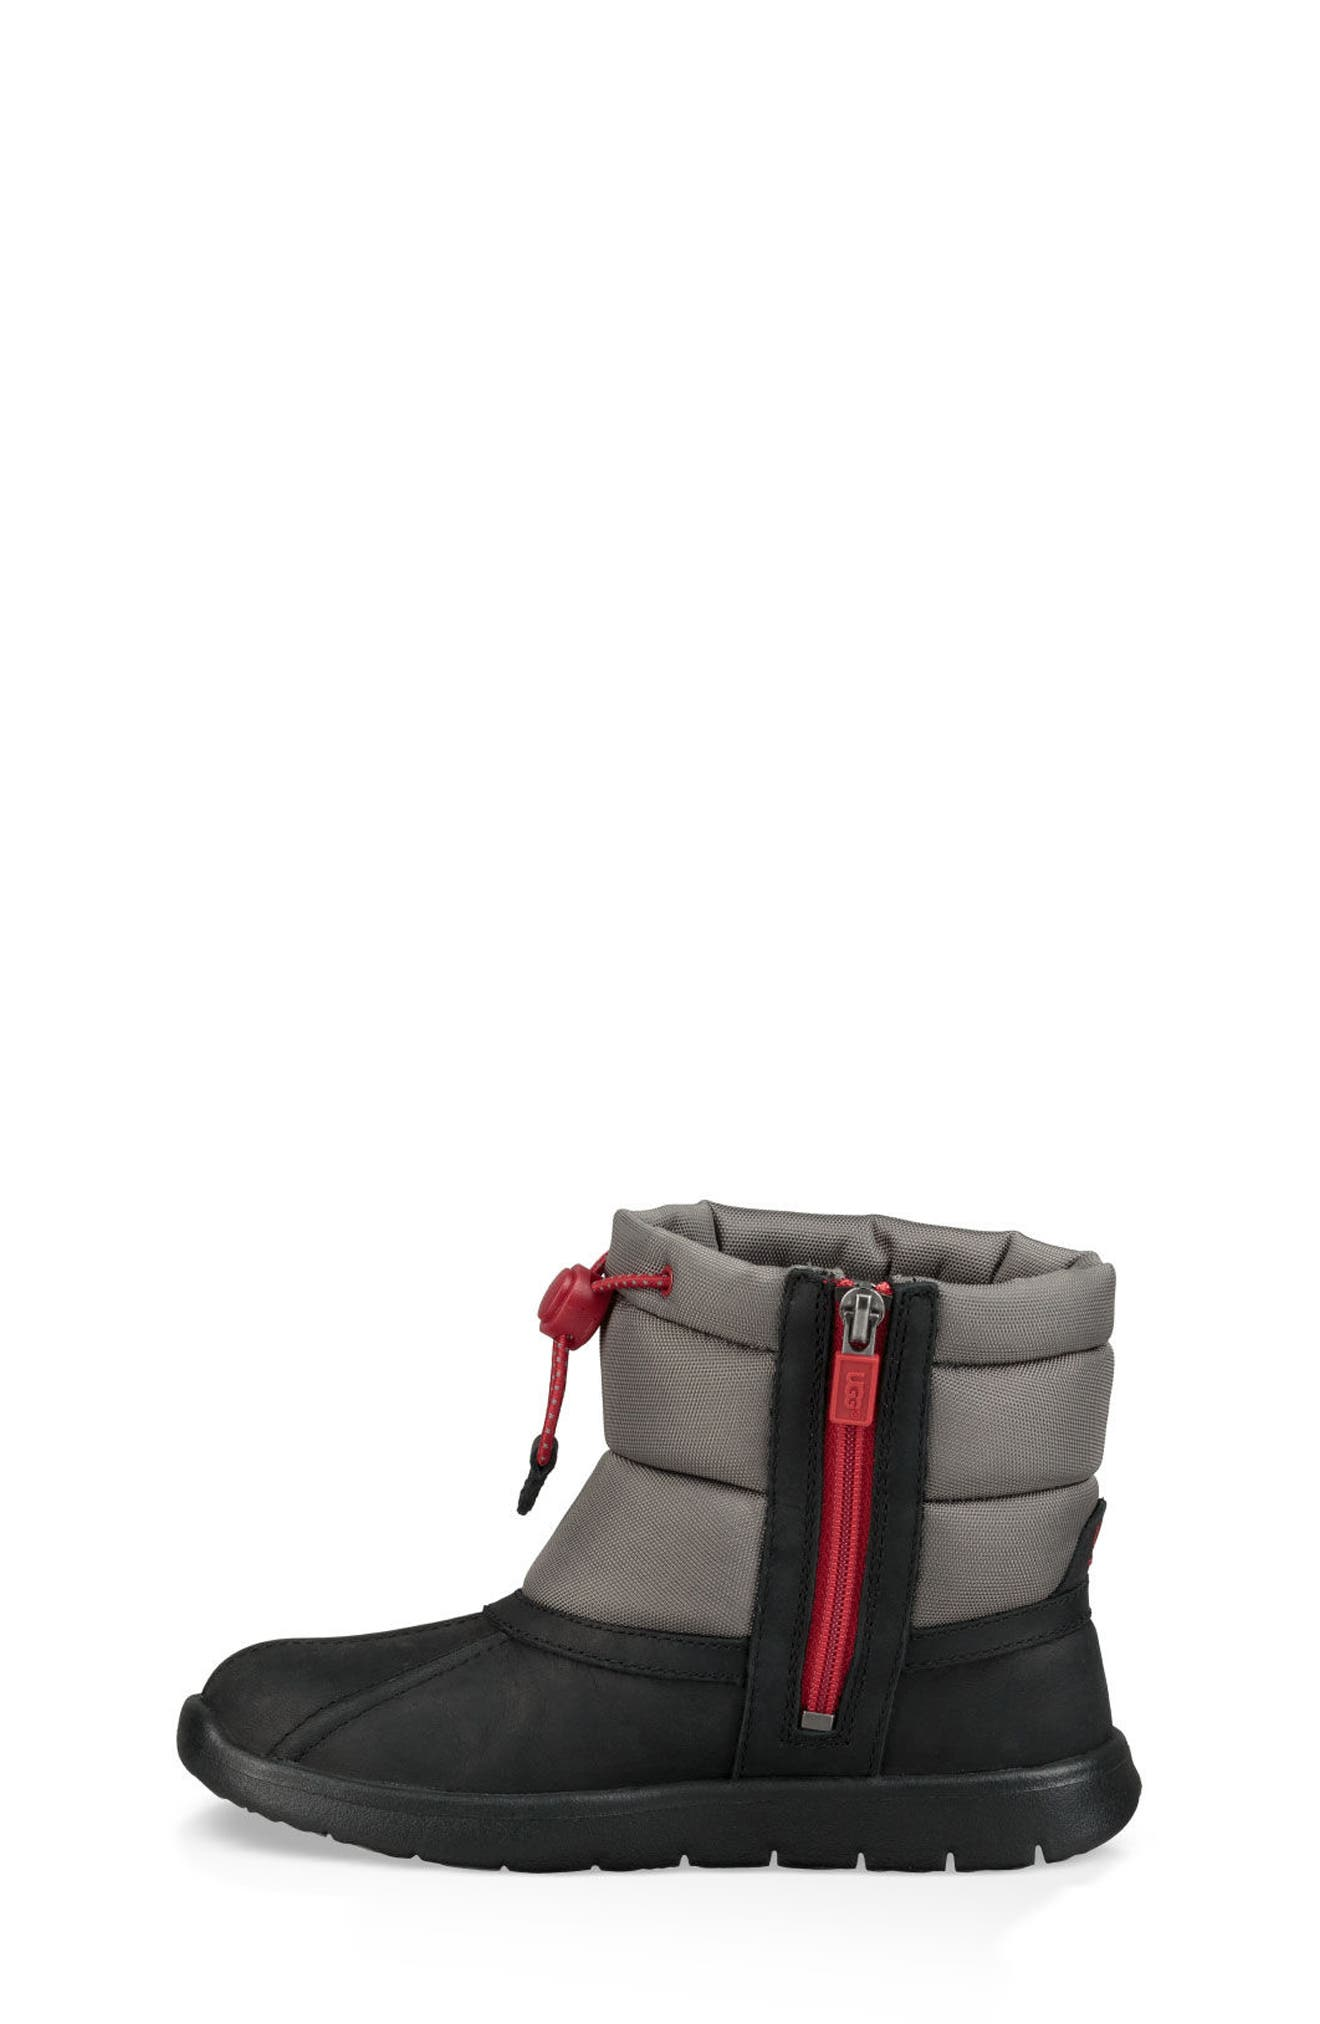 Puffer Winter Boot,                             Alternate thumbnail 6, color,                             BLACK